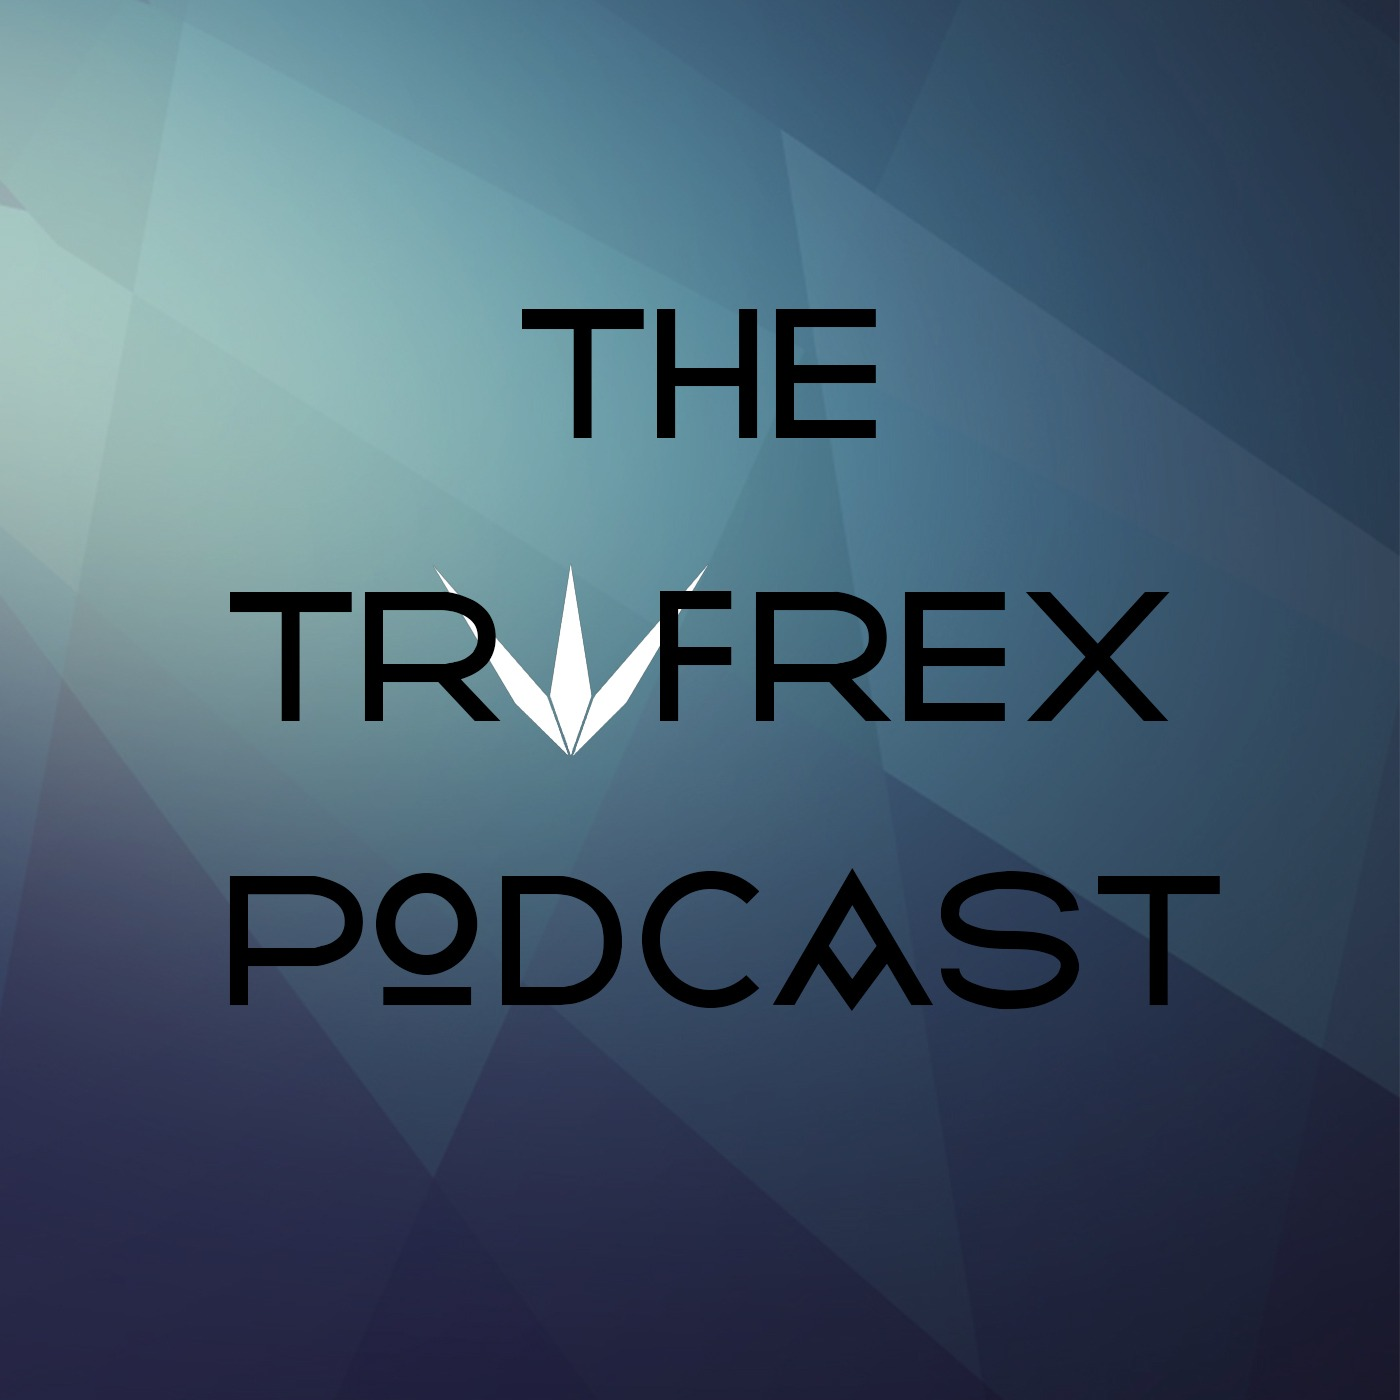 The Trafrex Podcast